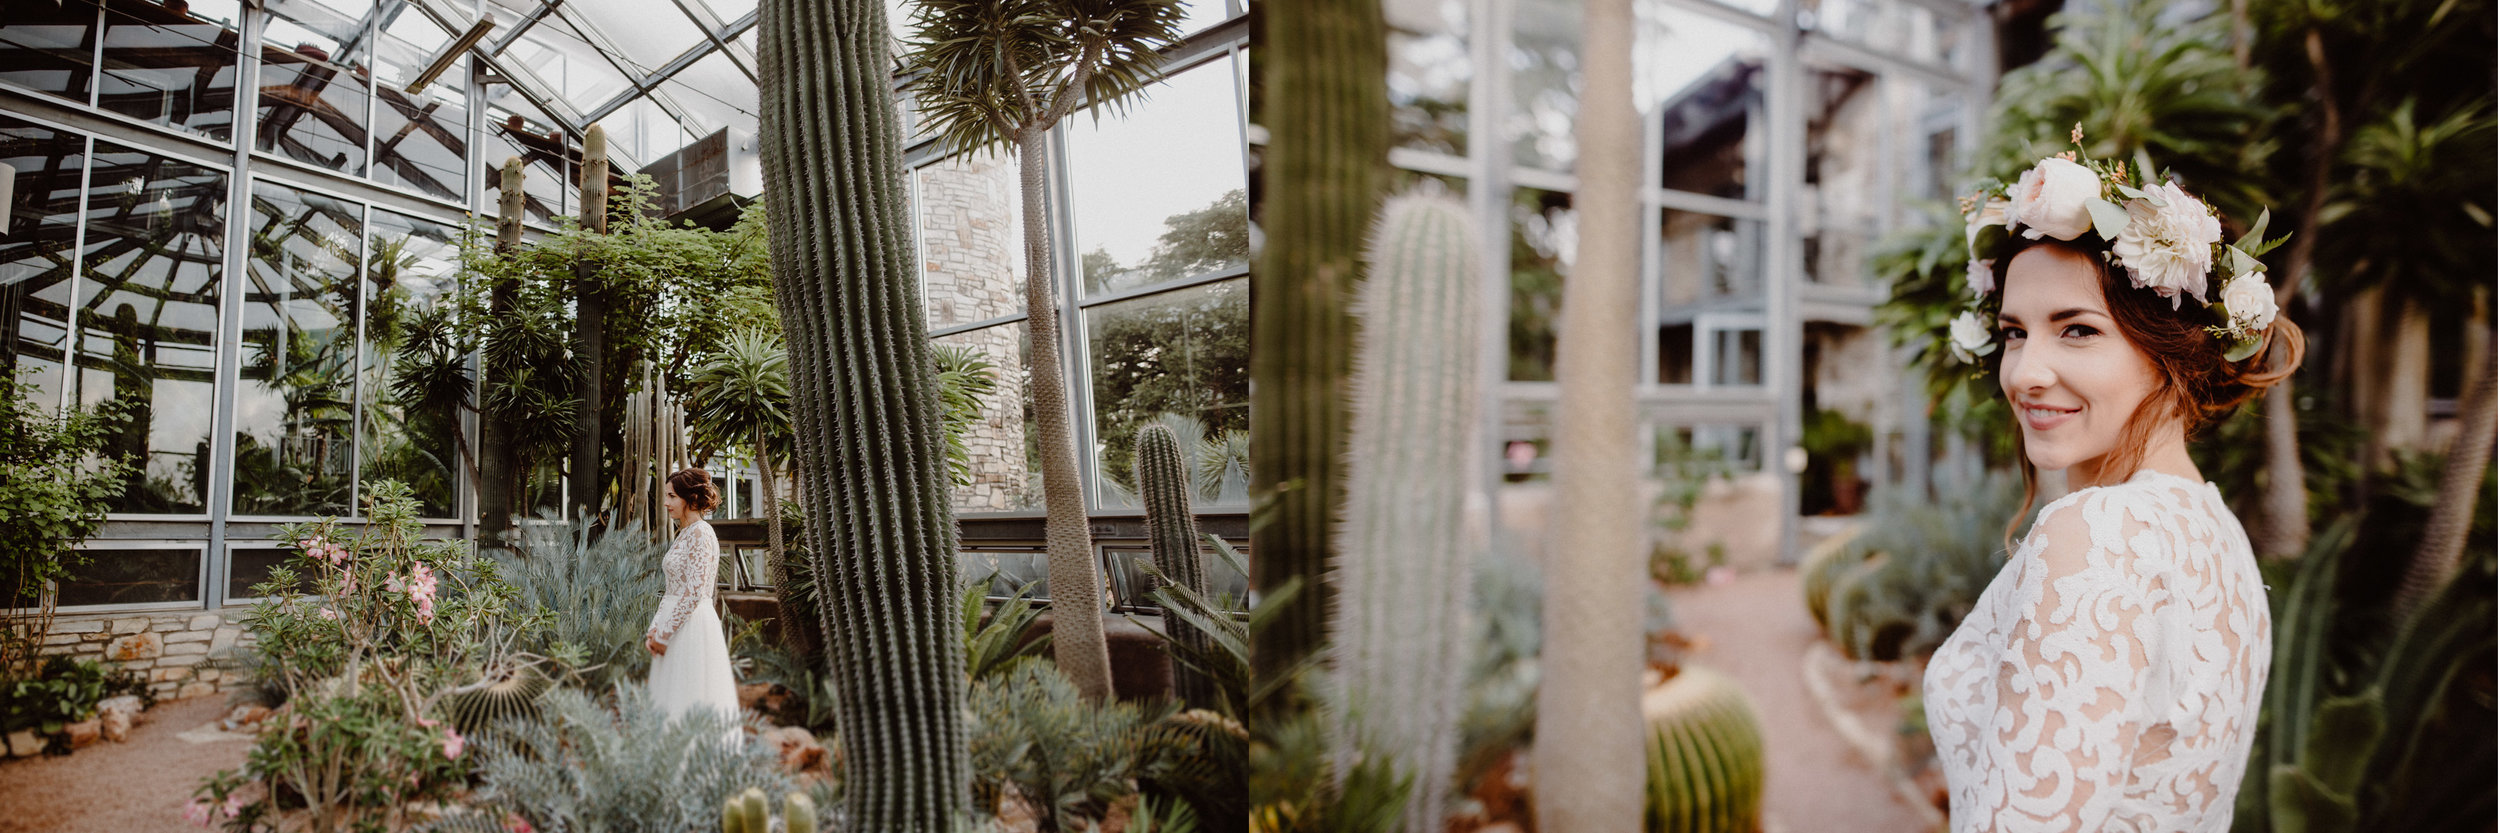 the-greenhouse-at-driftwood-bridals4.jpg